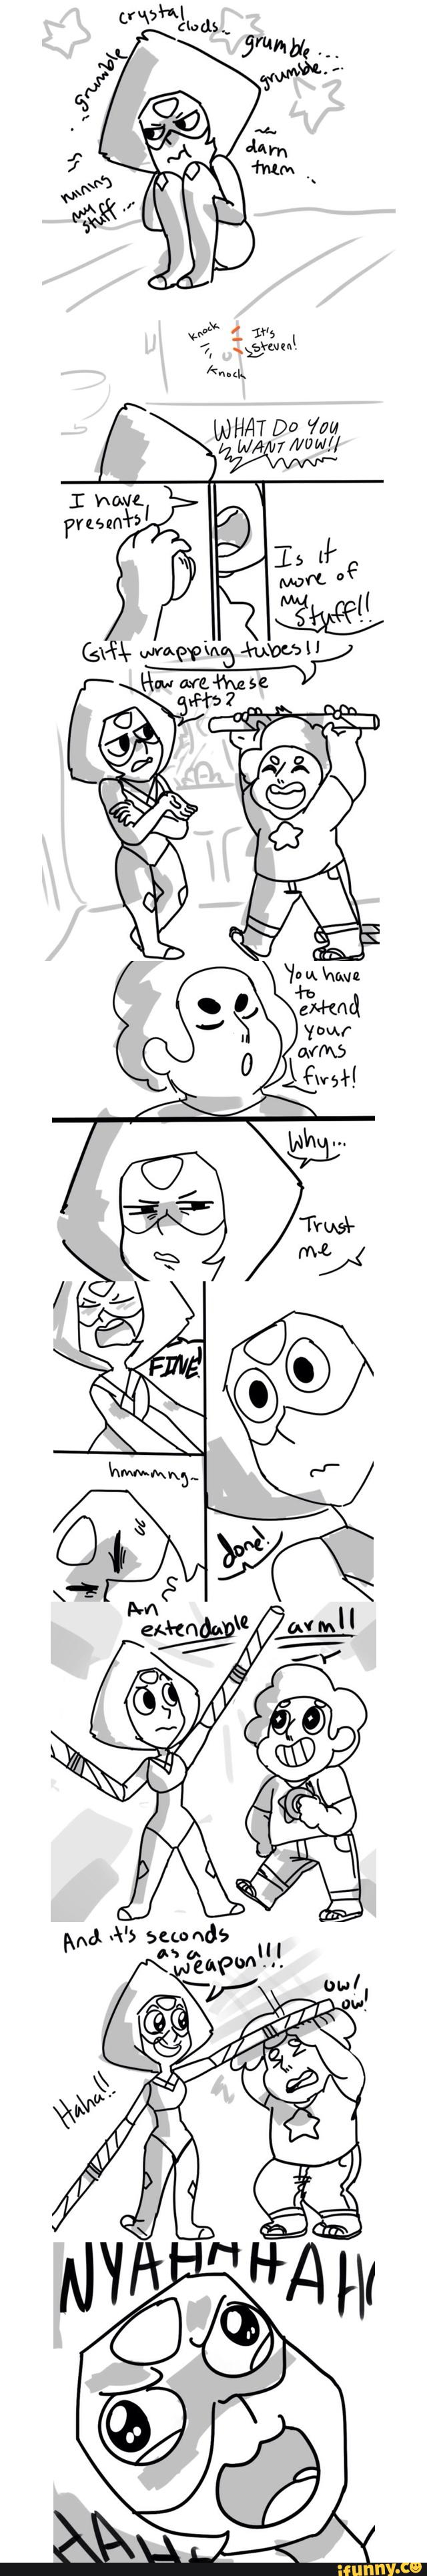 stevenuniverse, peridot I bet Steven will feel bad for her and do something like this as replacement limb enhancers